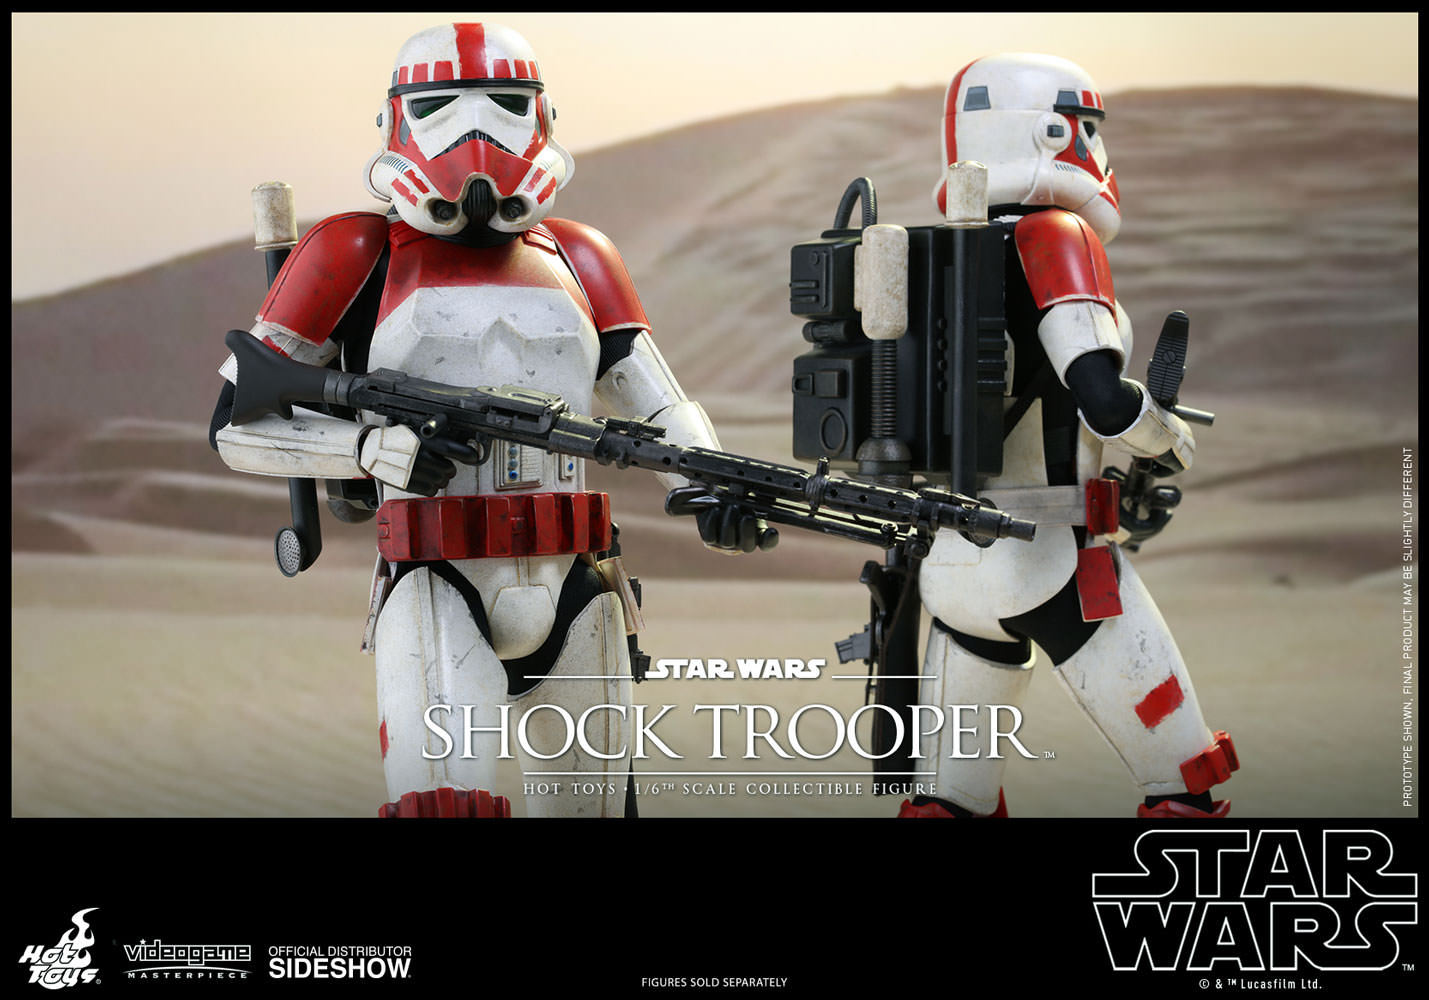 Star wars shock trooper sixth scale figure by hot toys sideshow